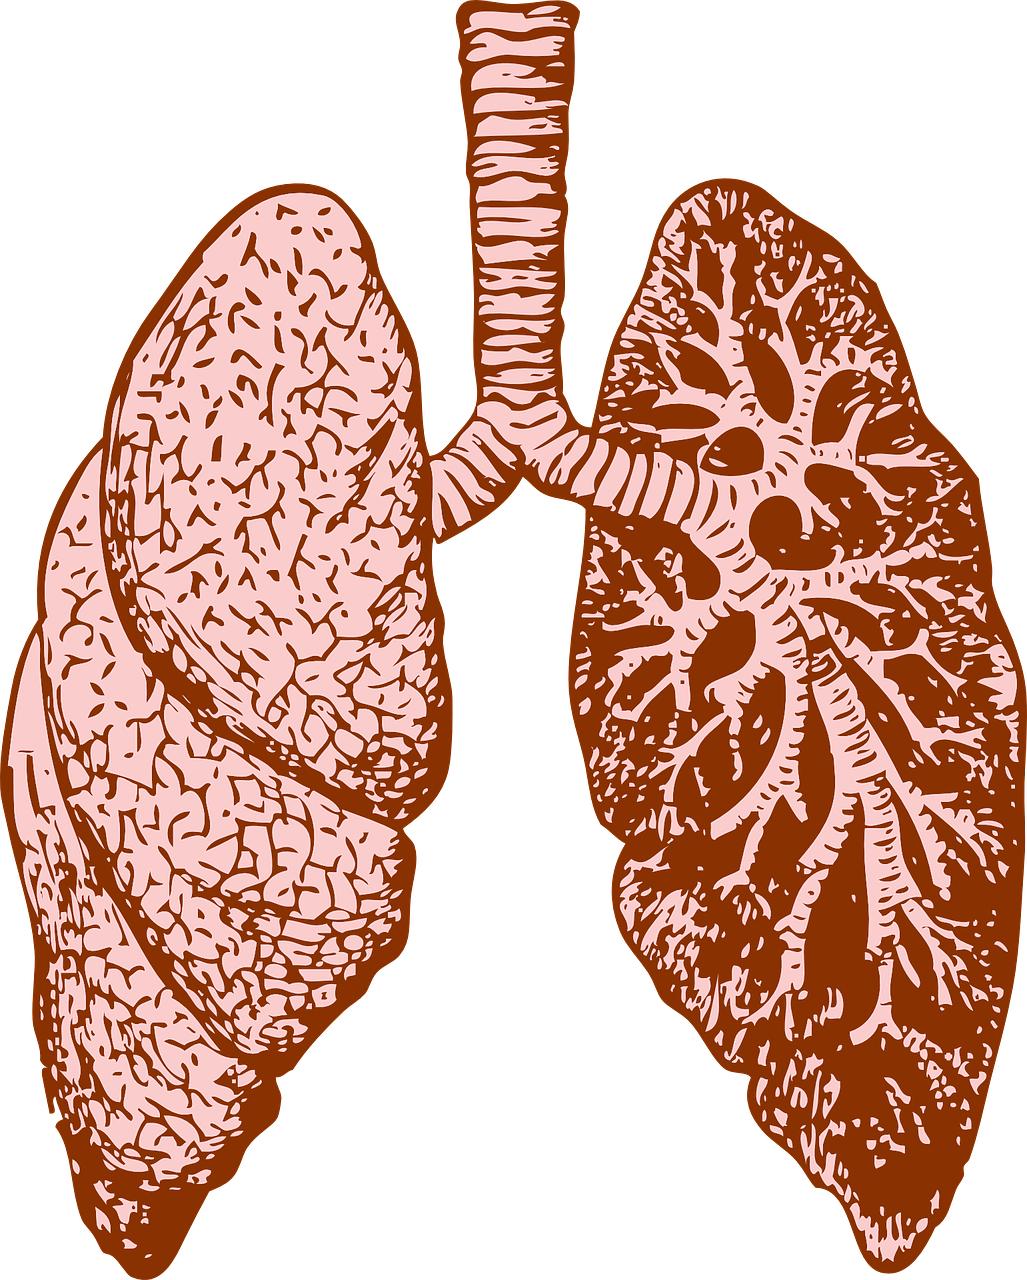 Artist depiction of the lungs.